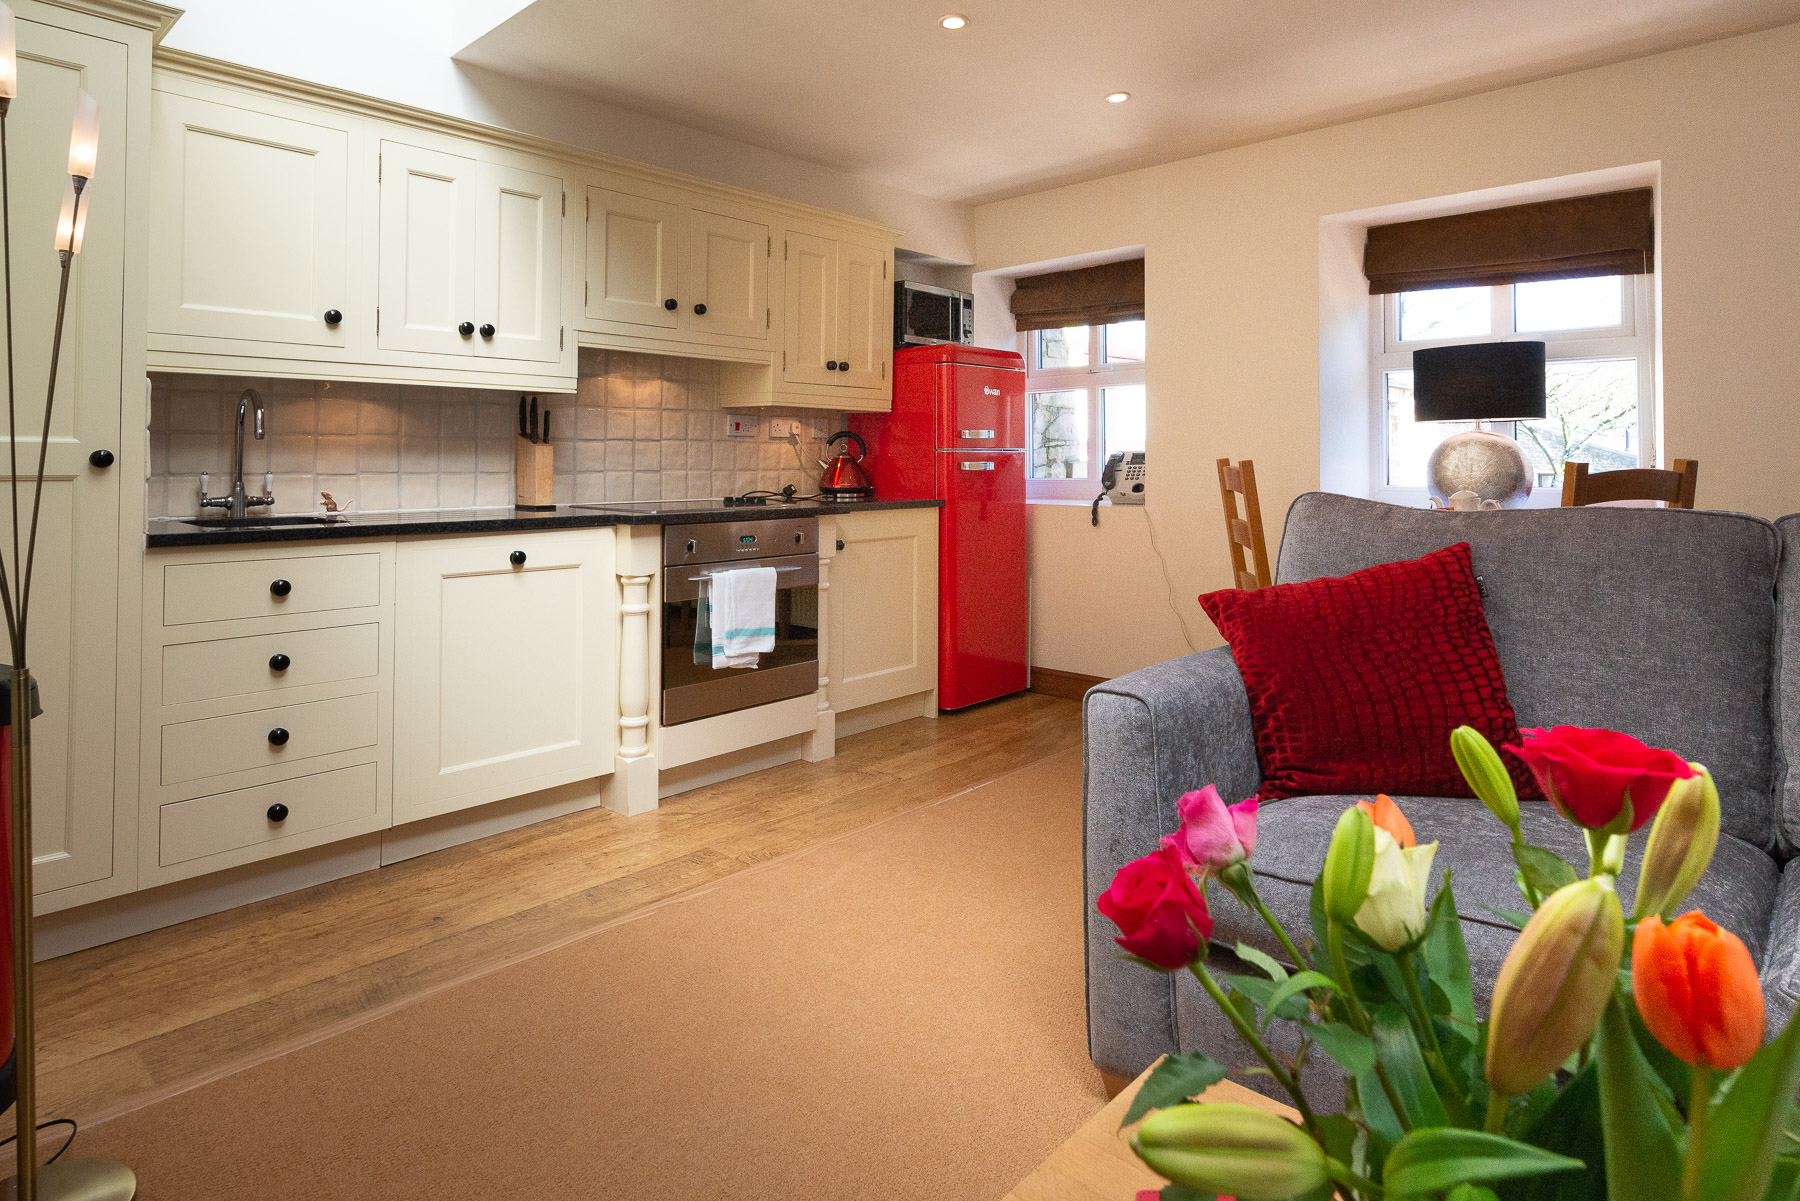 Curlews Nest Kitchen. luxury holiday cottage in Lancashire